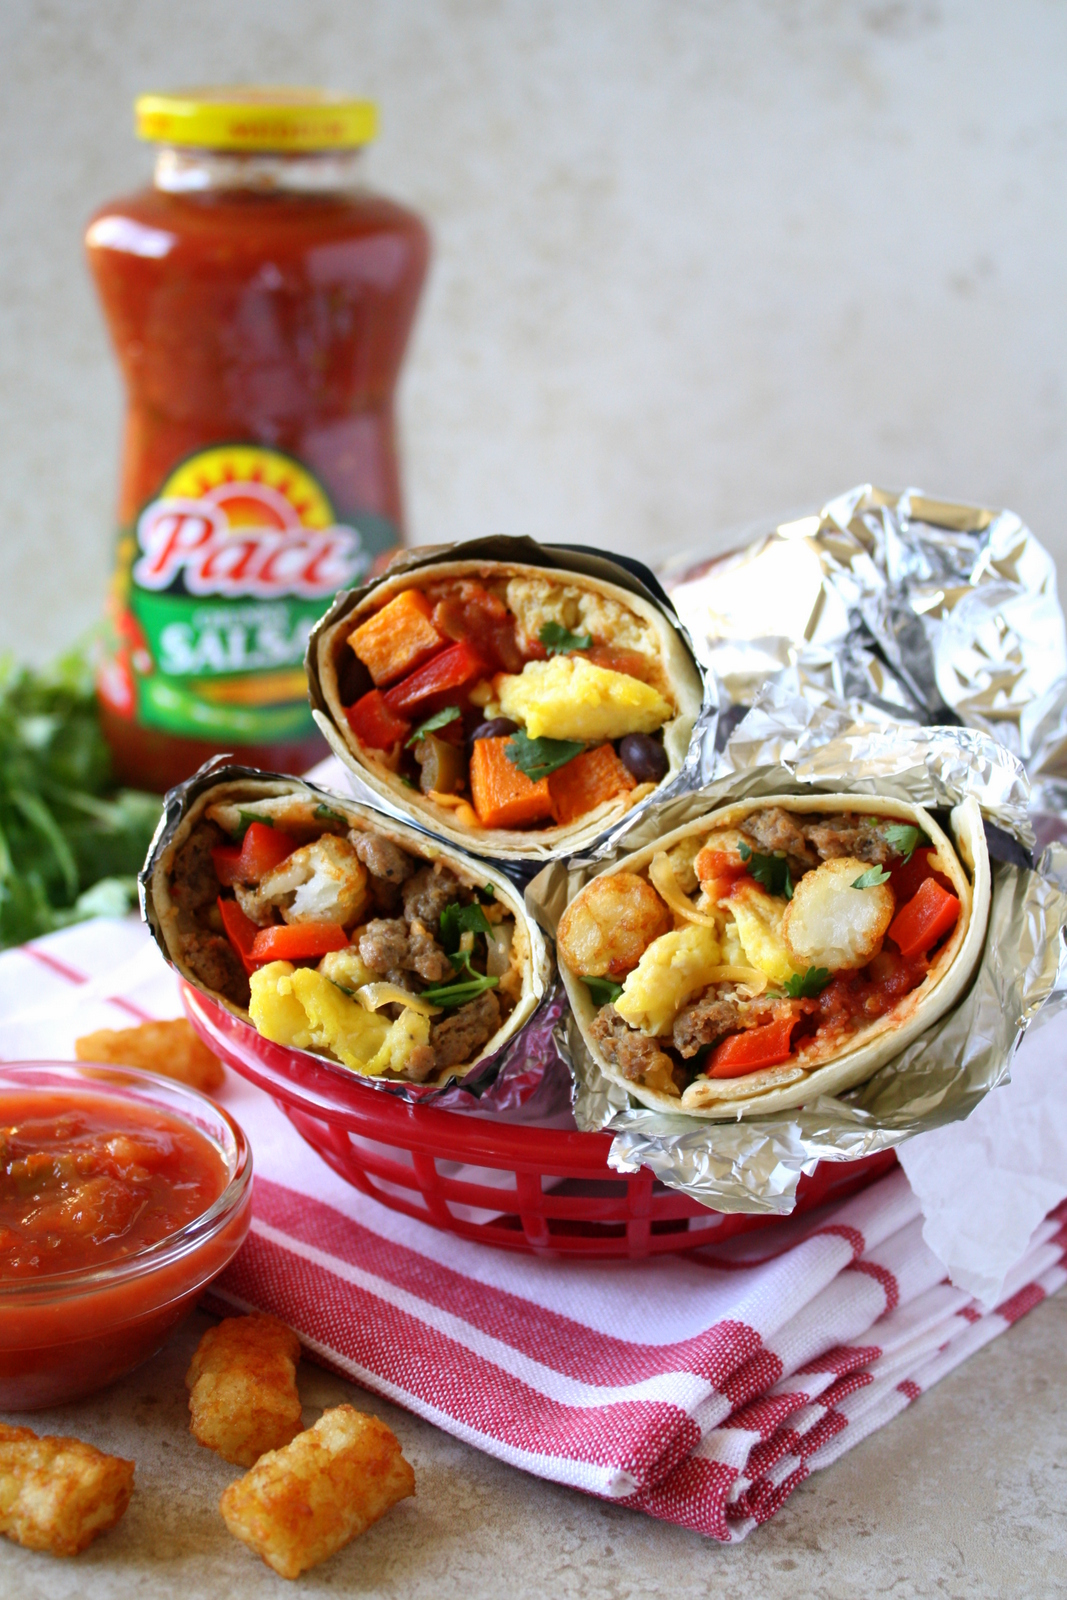 freezer friendly breakfast burritos #MakeGameTimeSaucy #shop